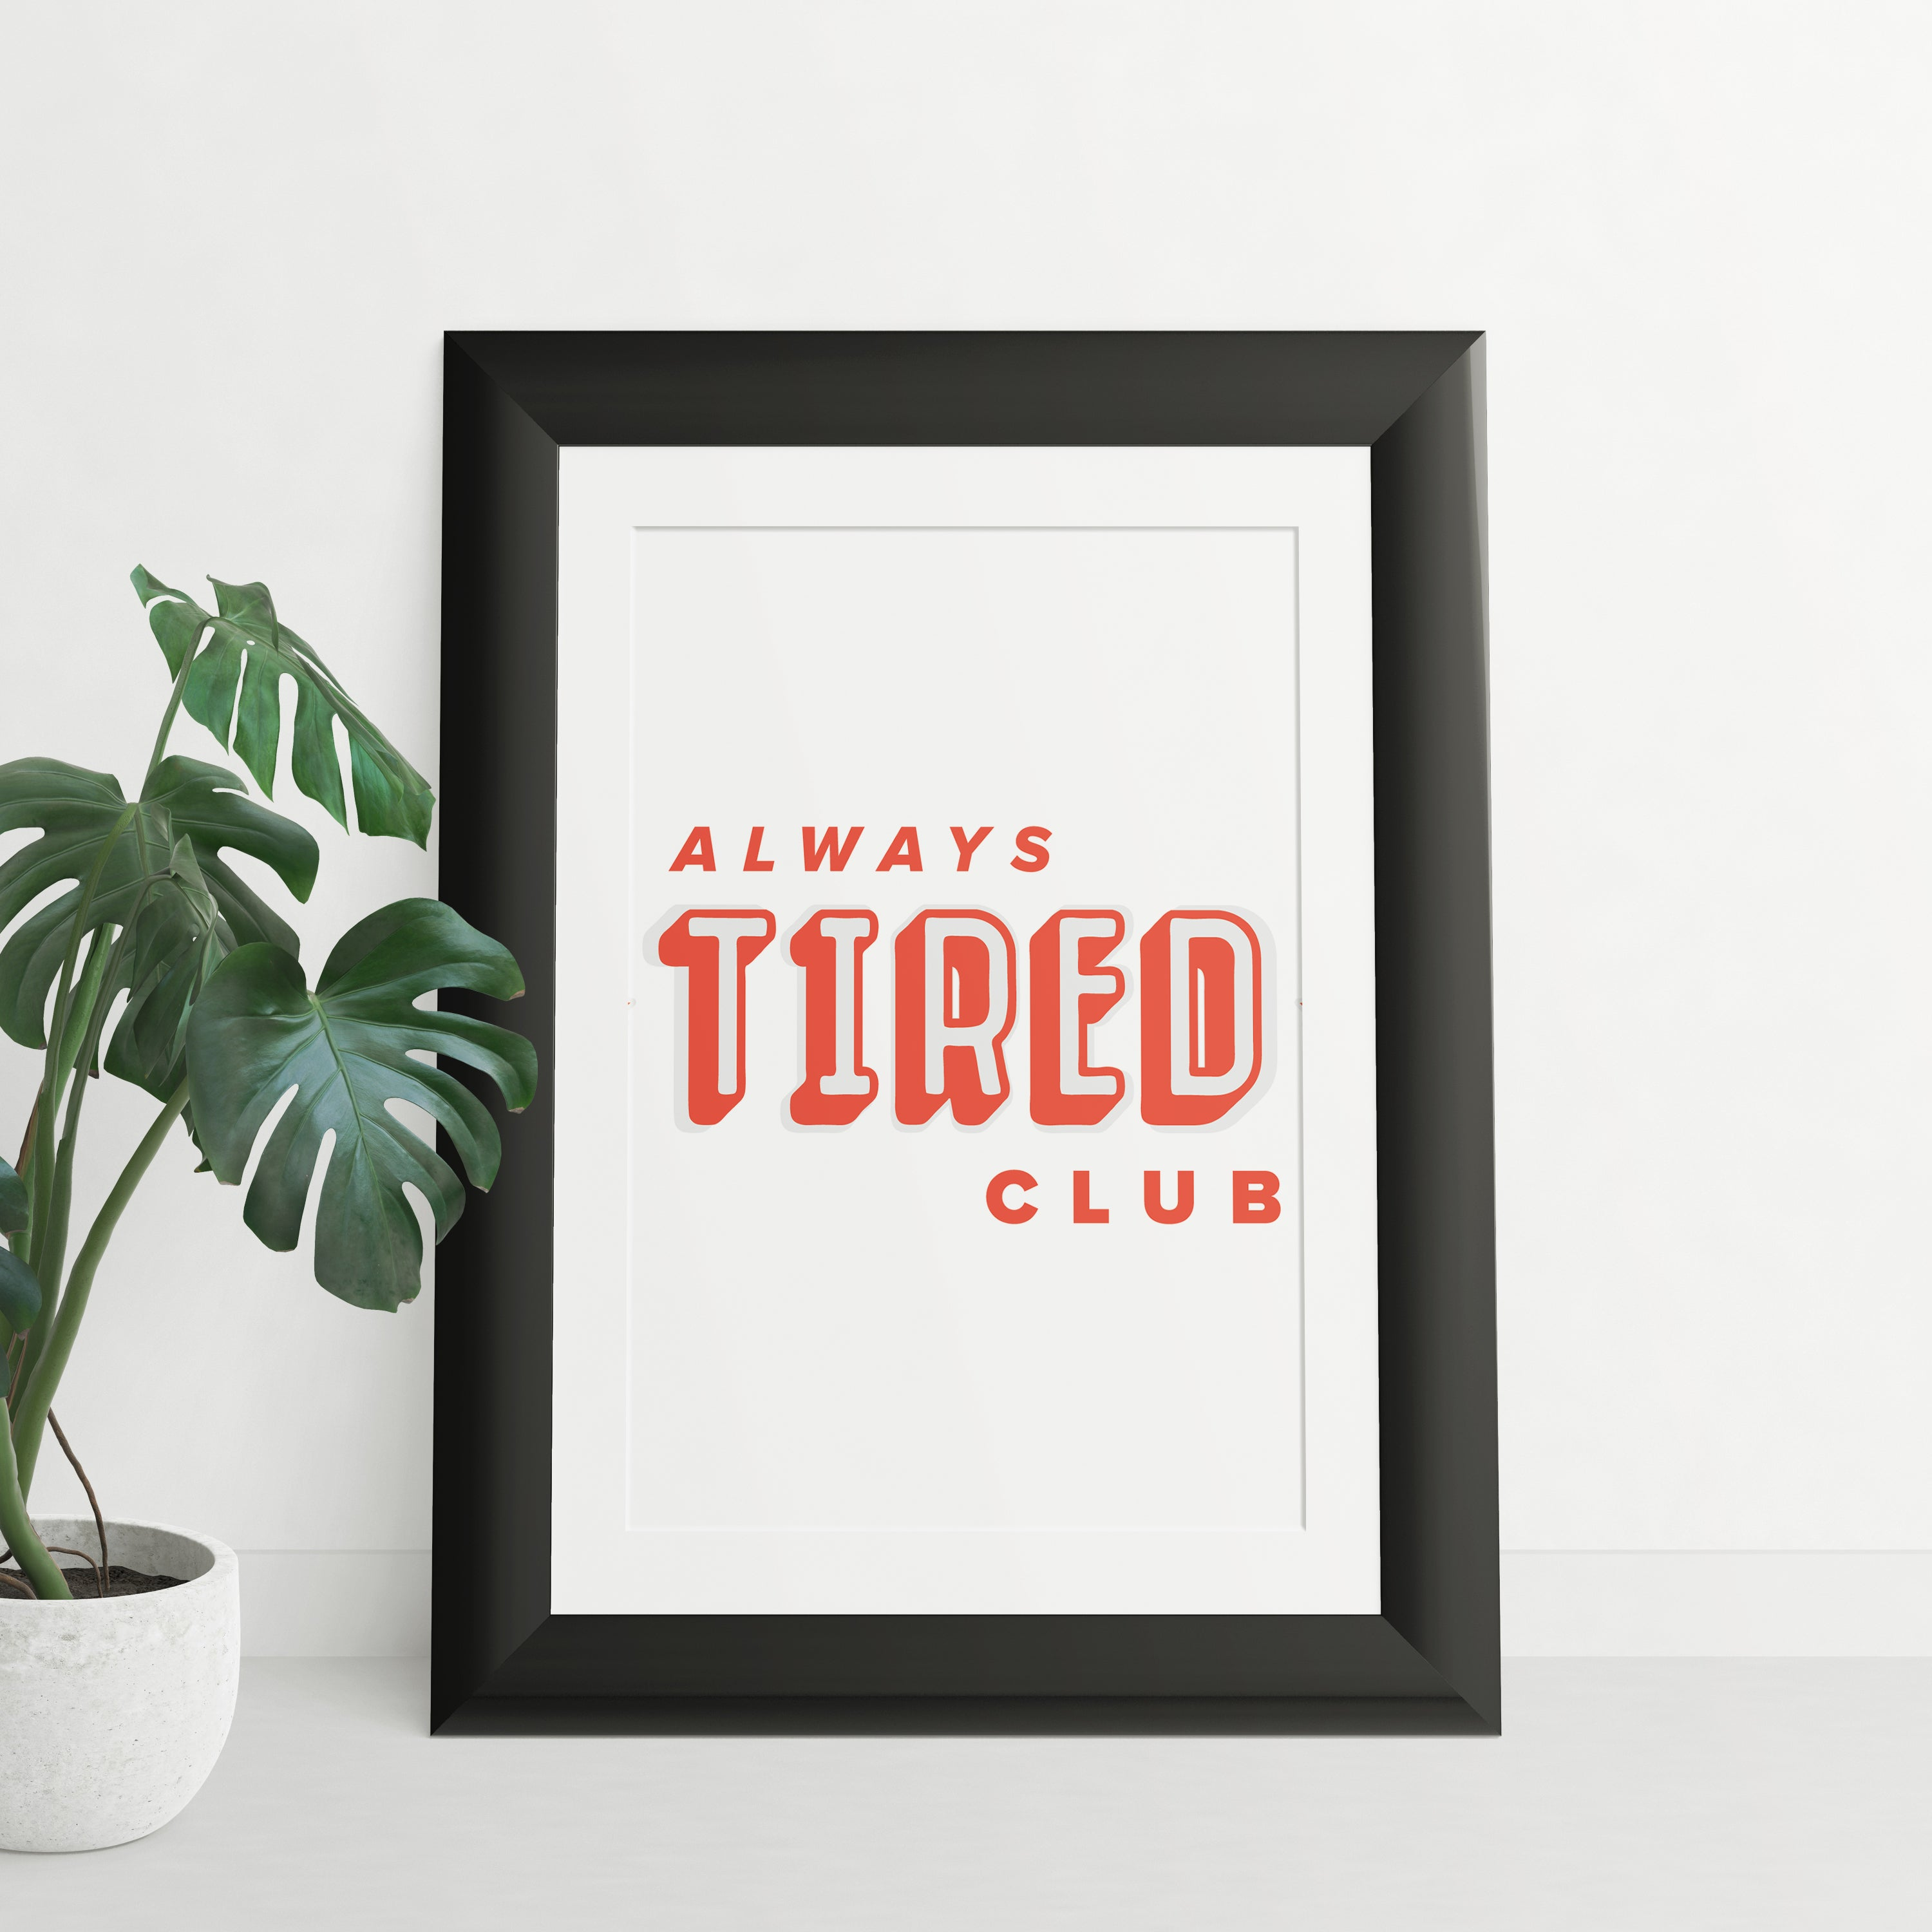 Alway's Tired Club - Art Print